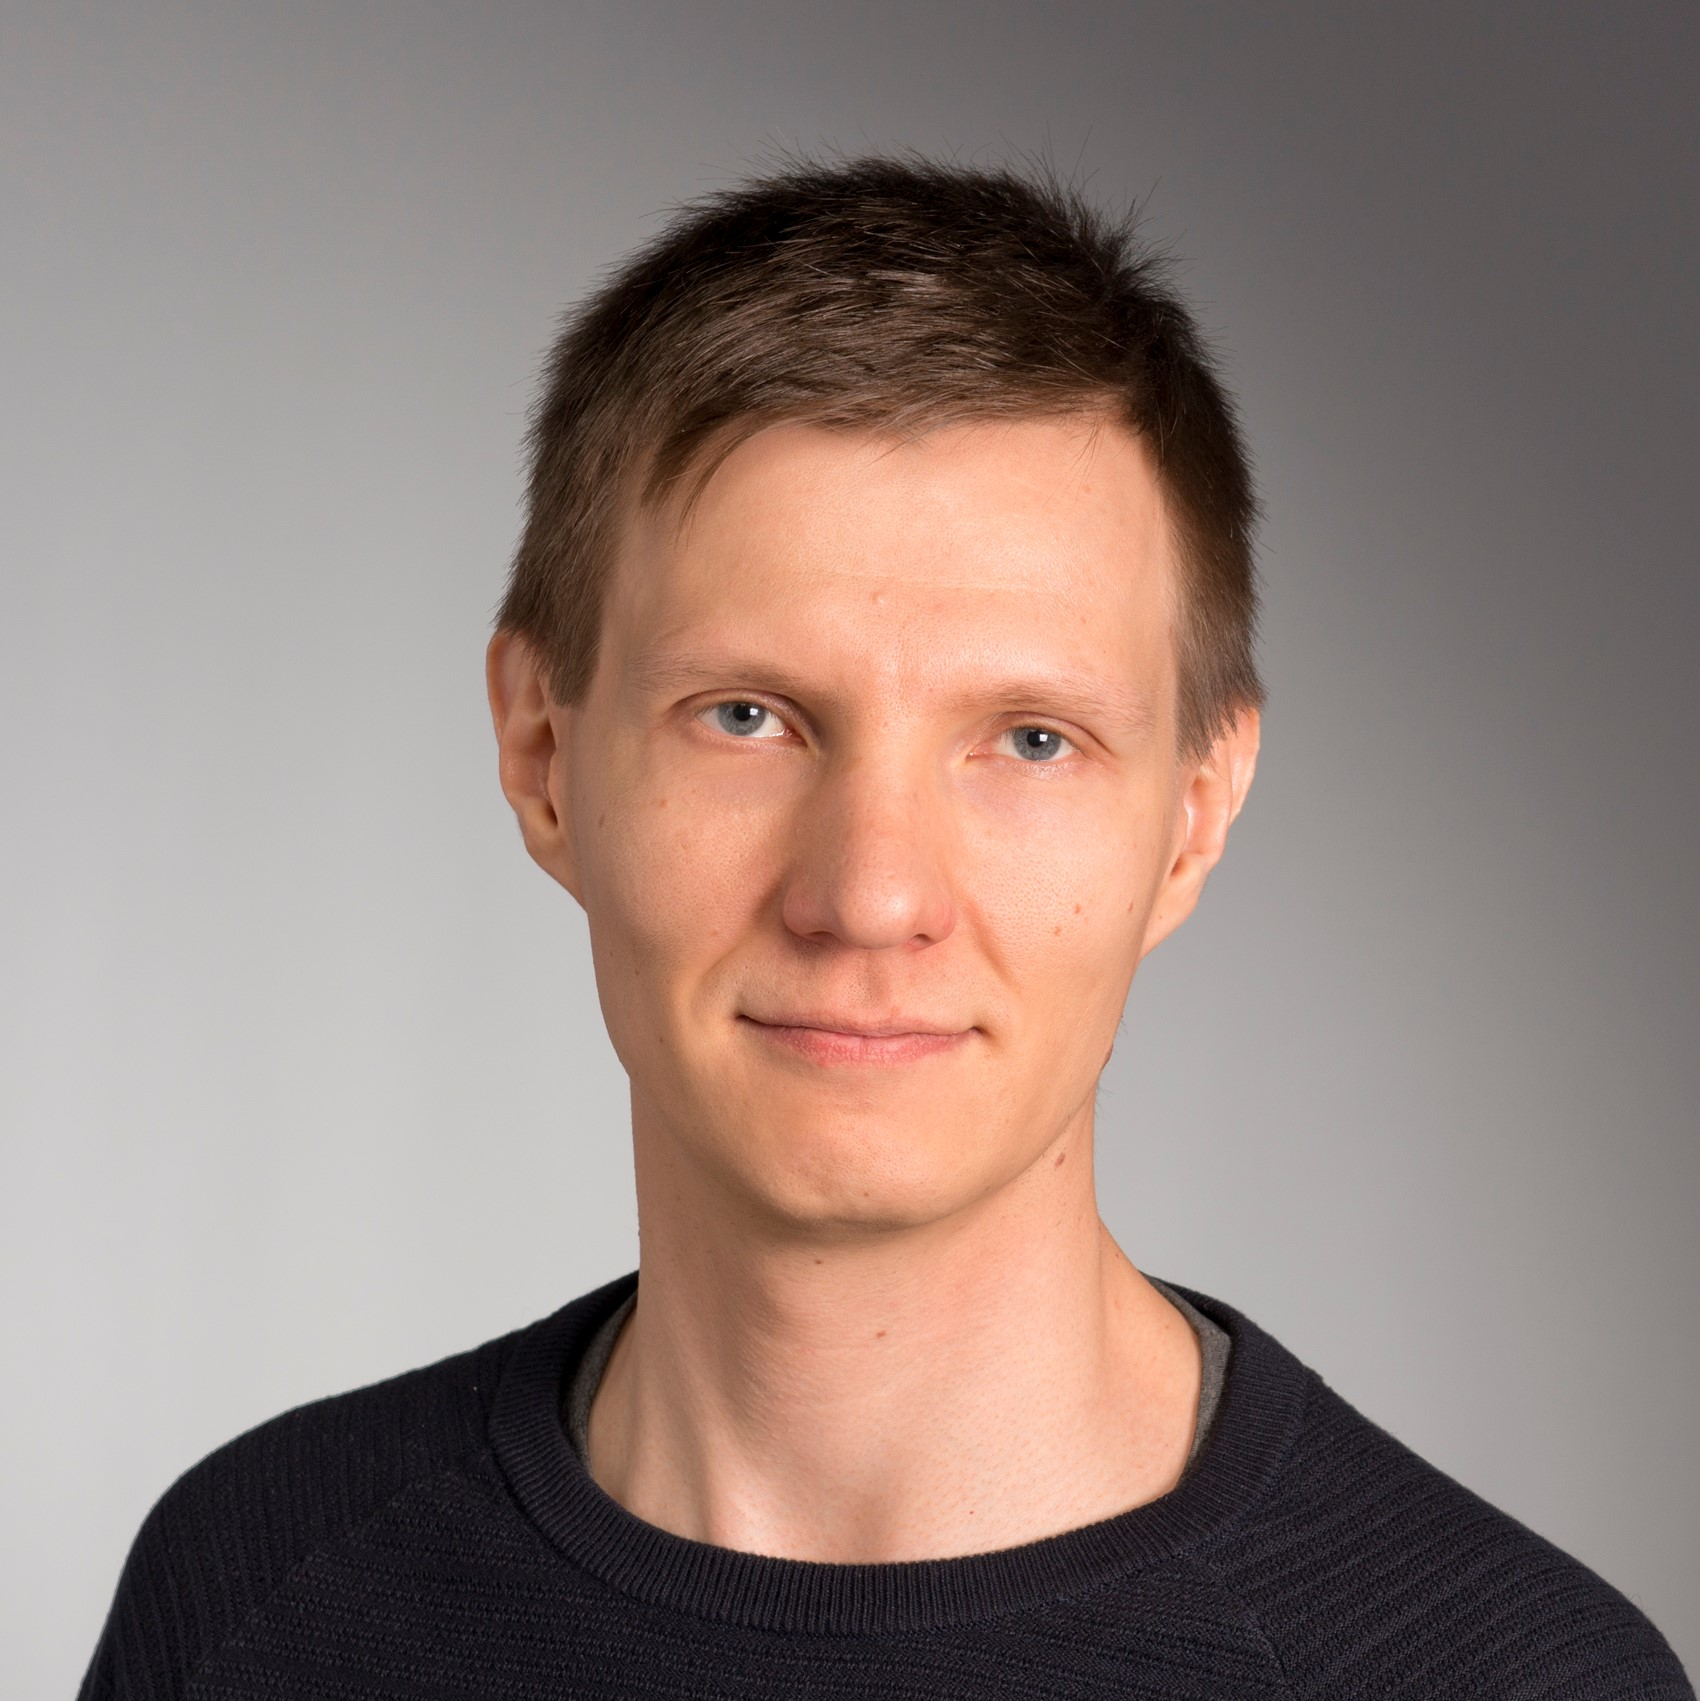 Matti Karppanen | Data Scientist